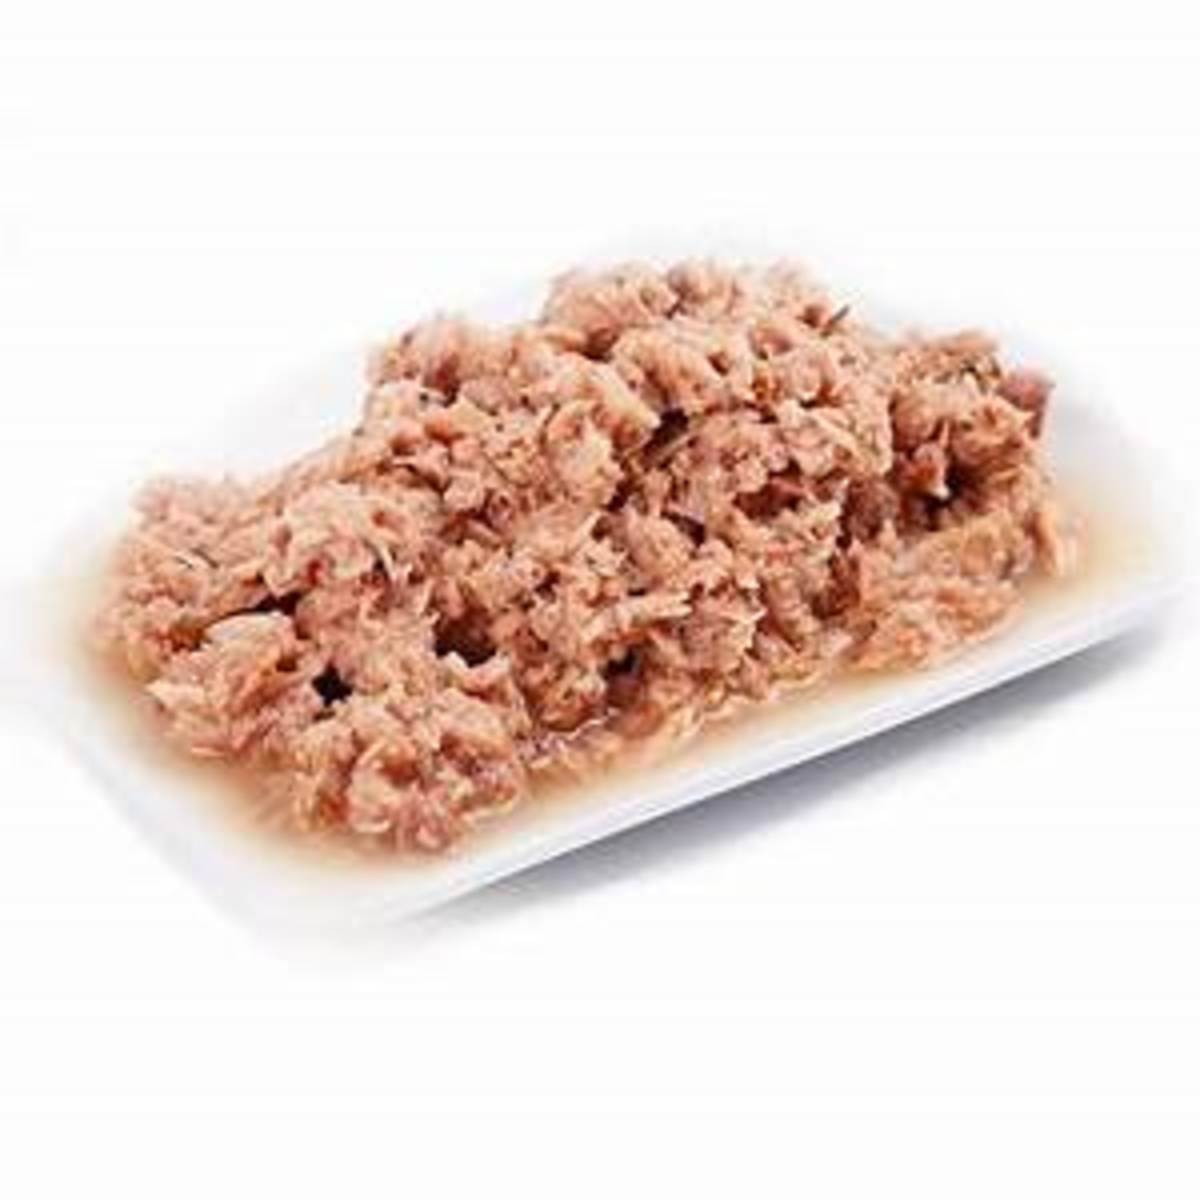 shredded tuna fish